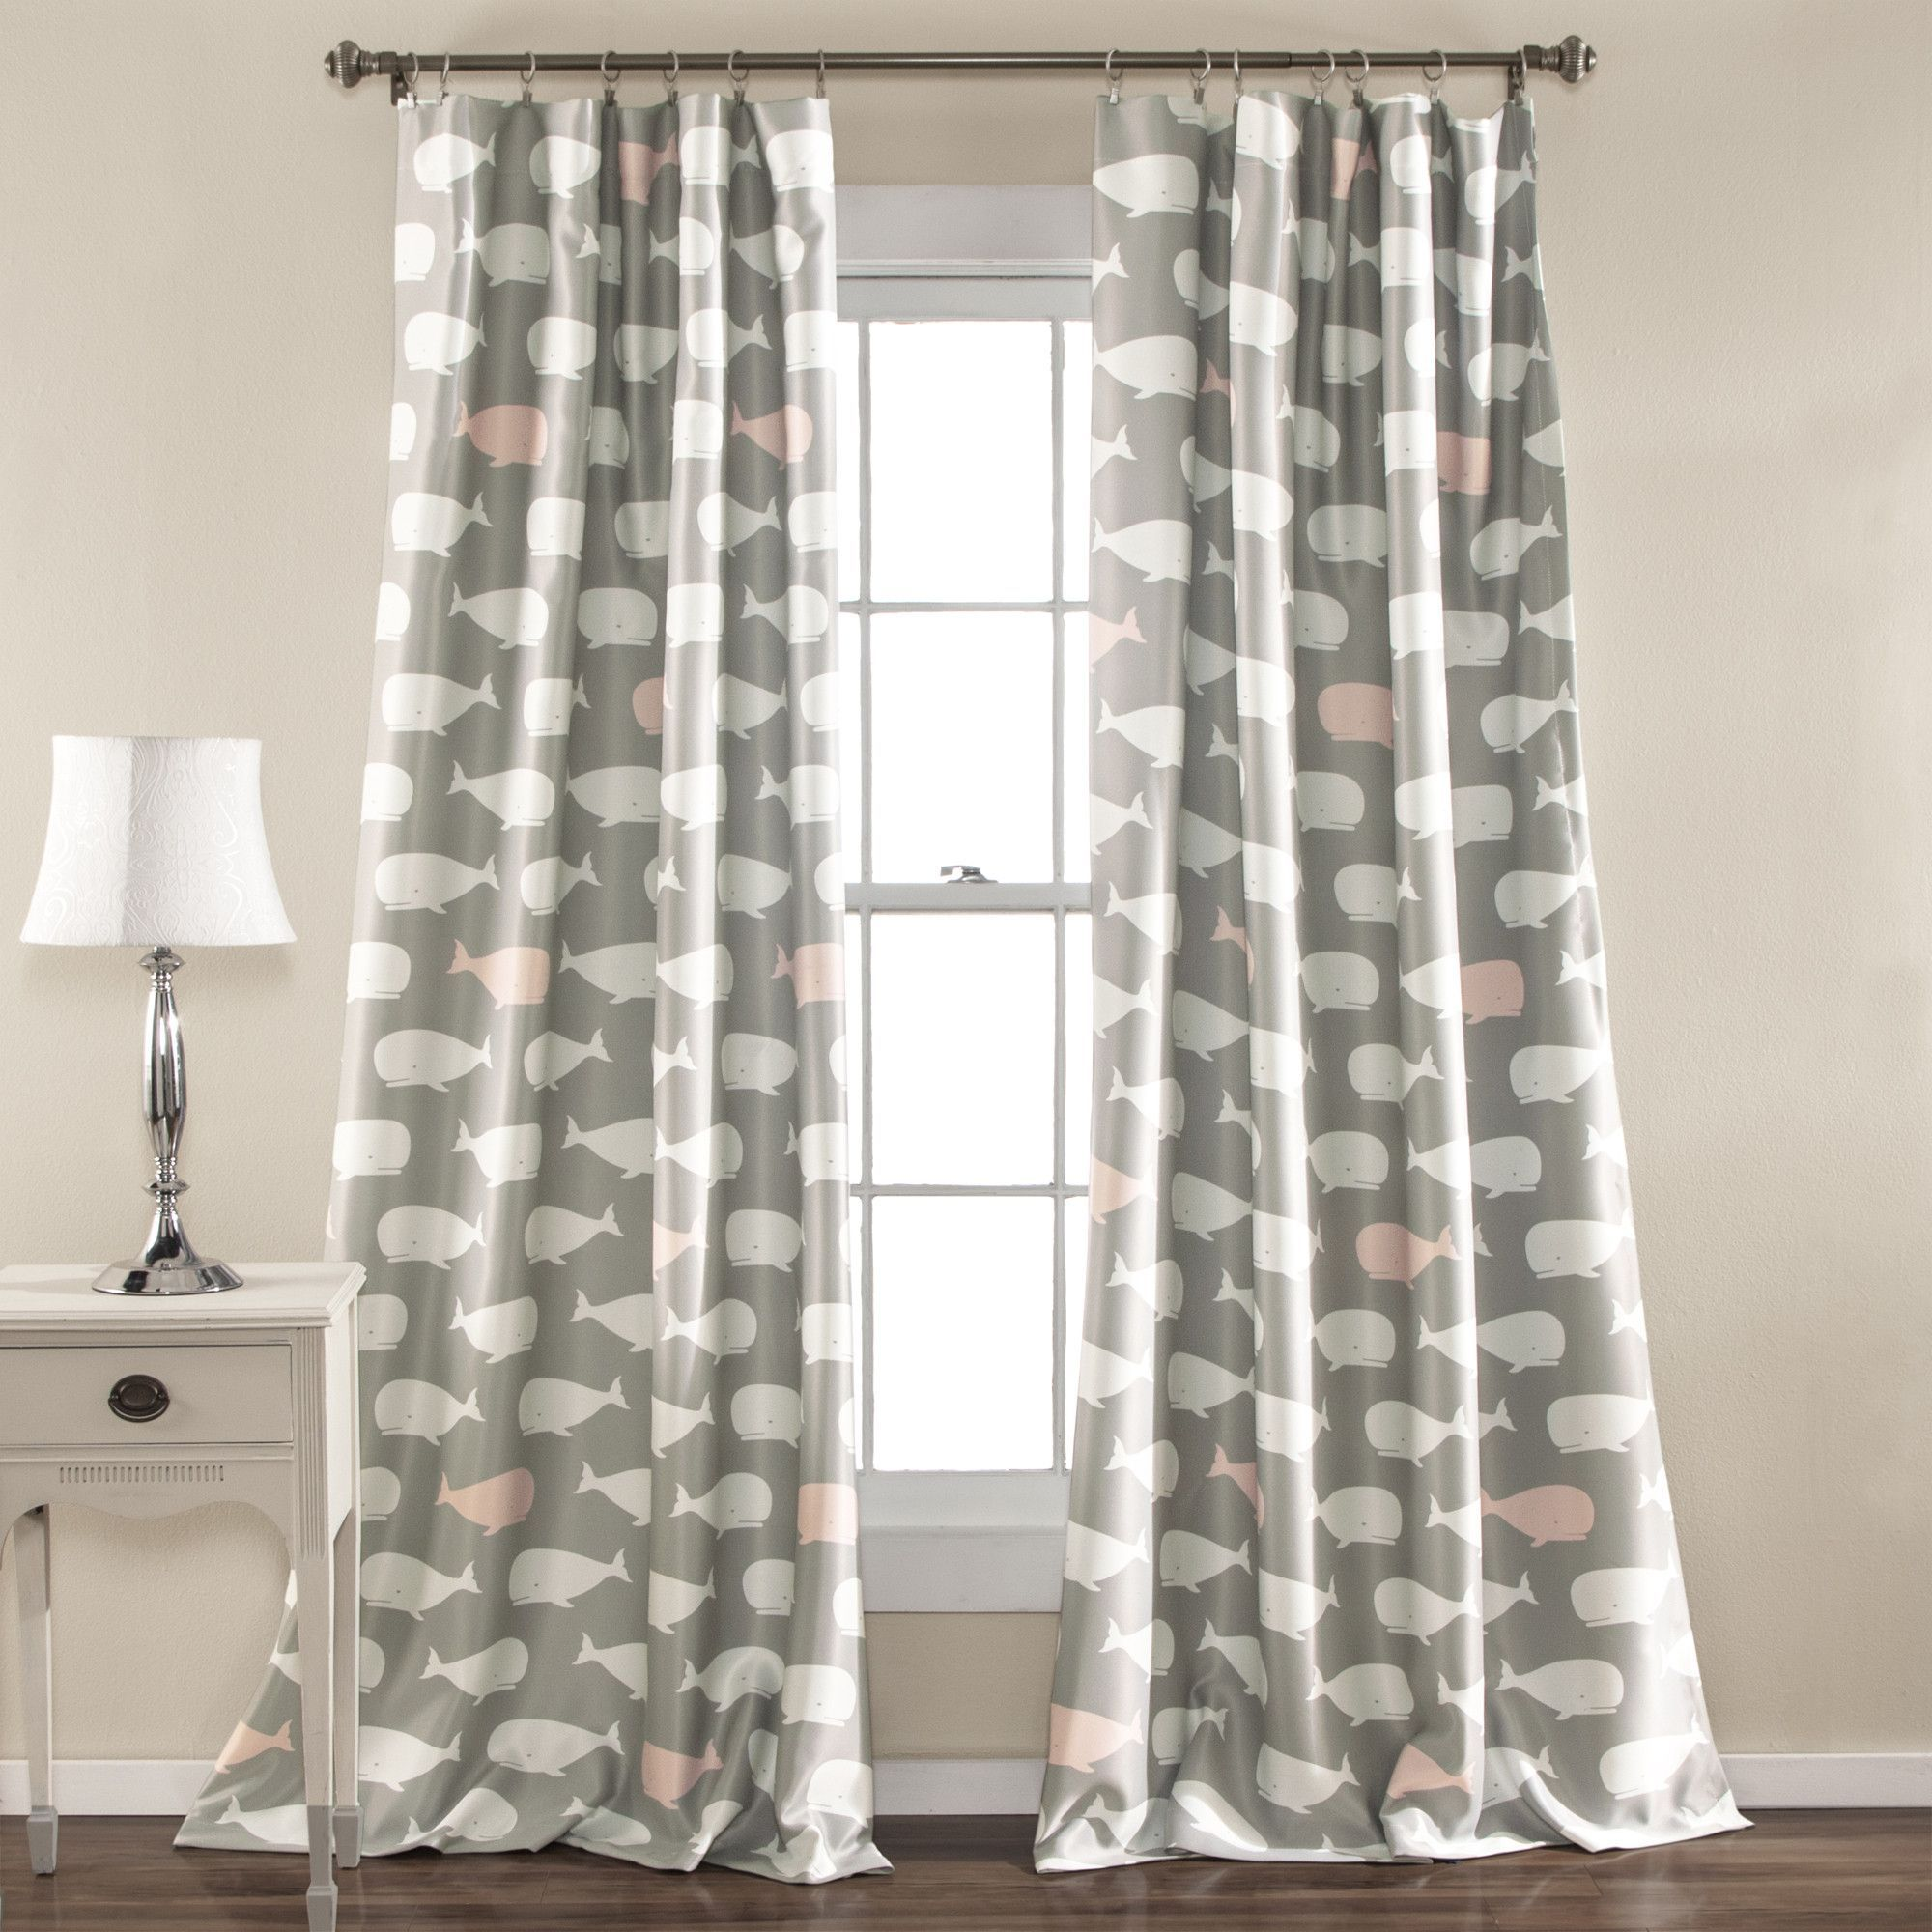 Whale Window Curtain Panel Set Panel Curtains Drapes Curtains